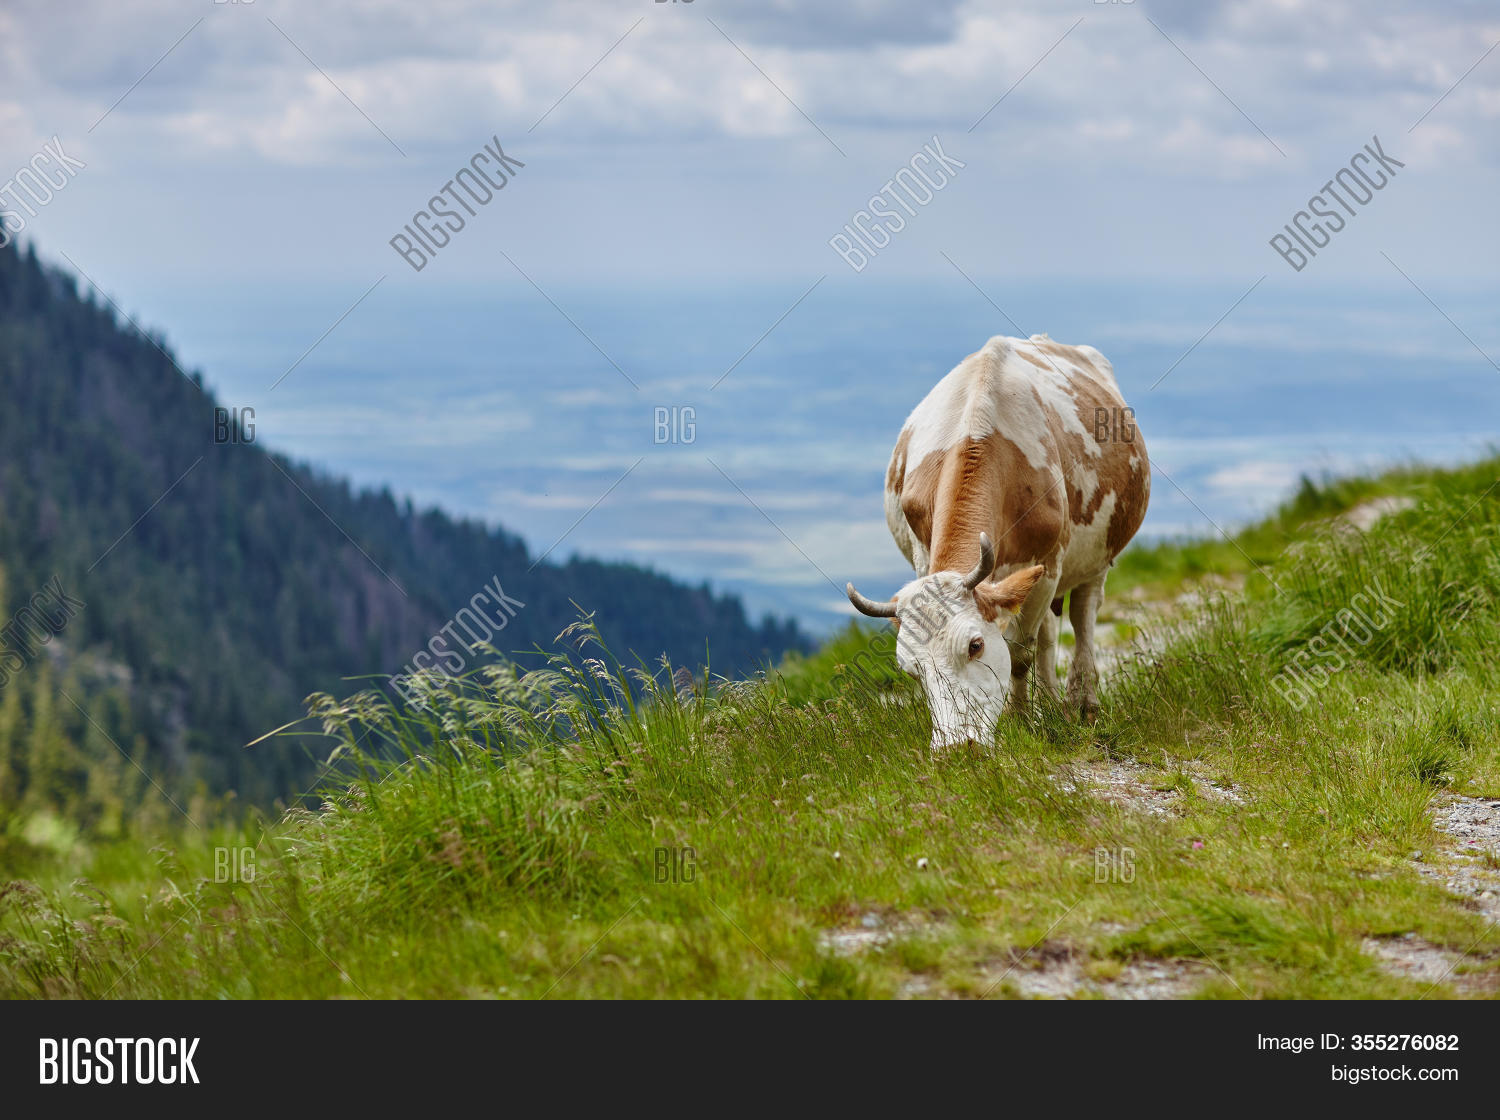 Brown White Cow Eating Image Photo Free Trial Bigstock